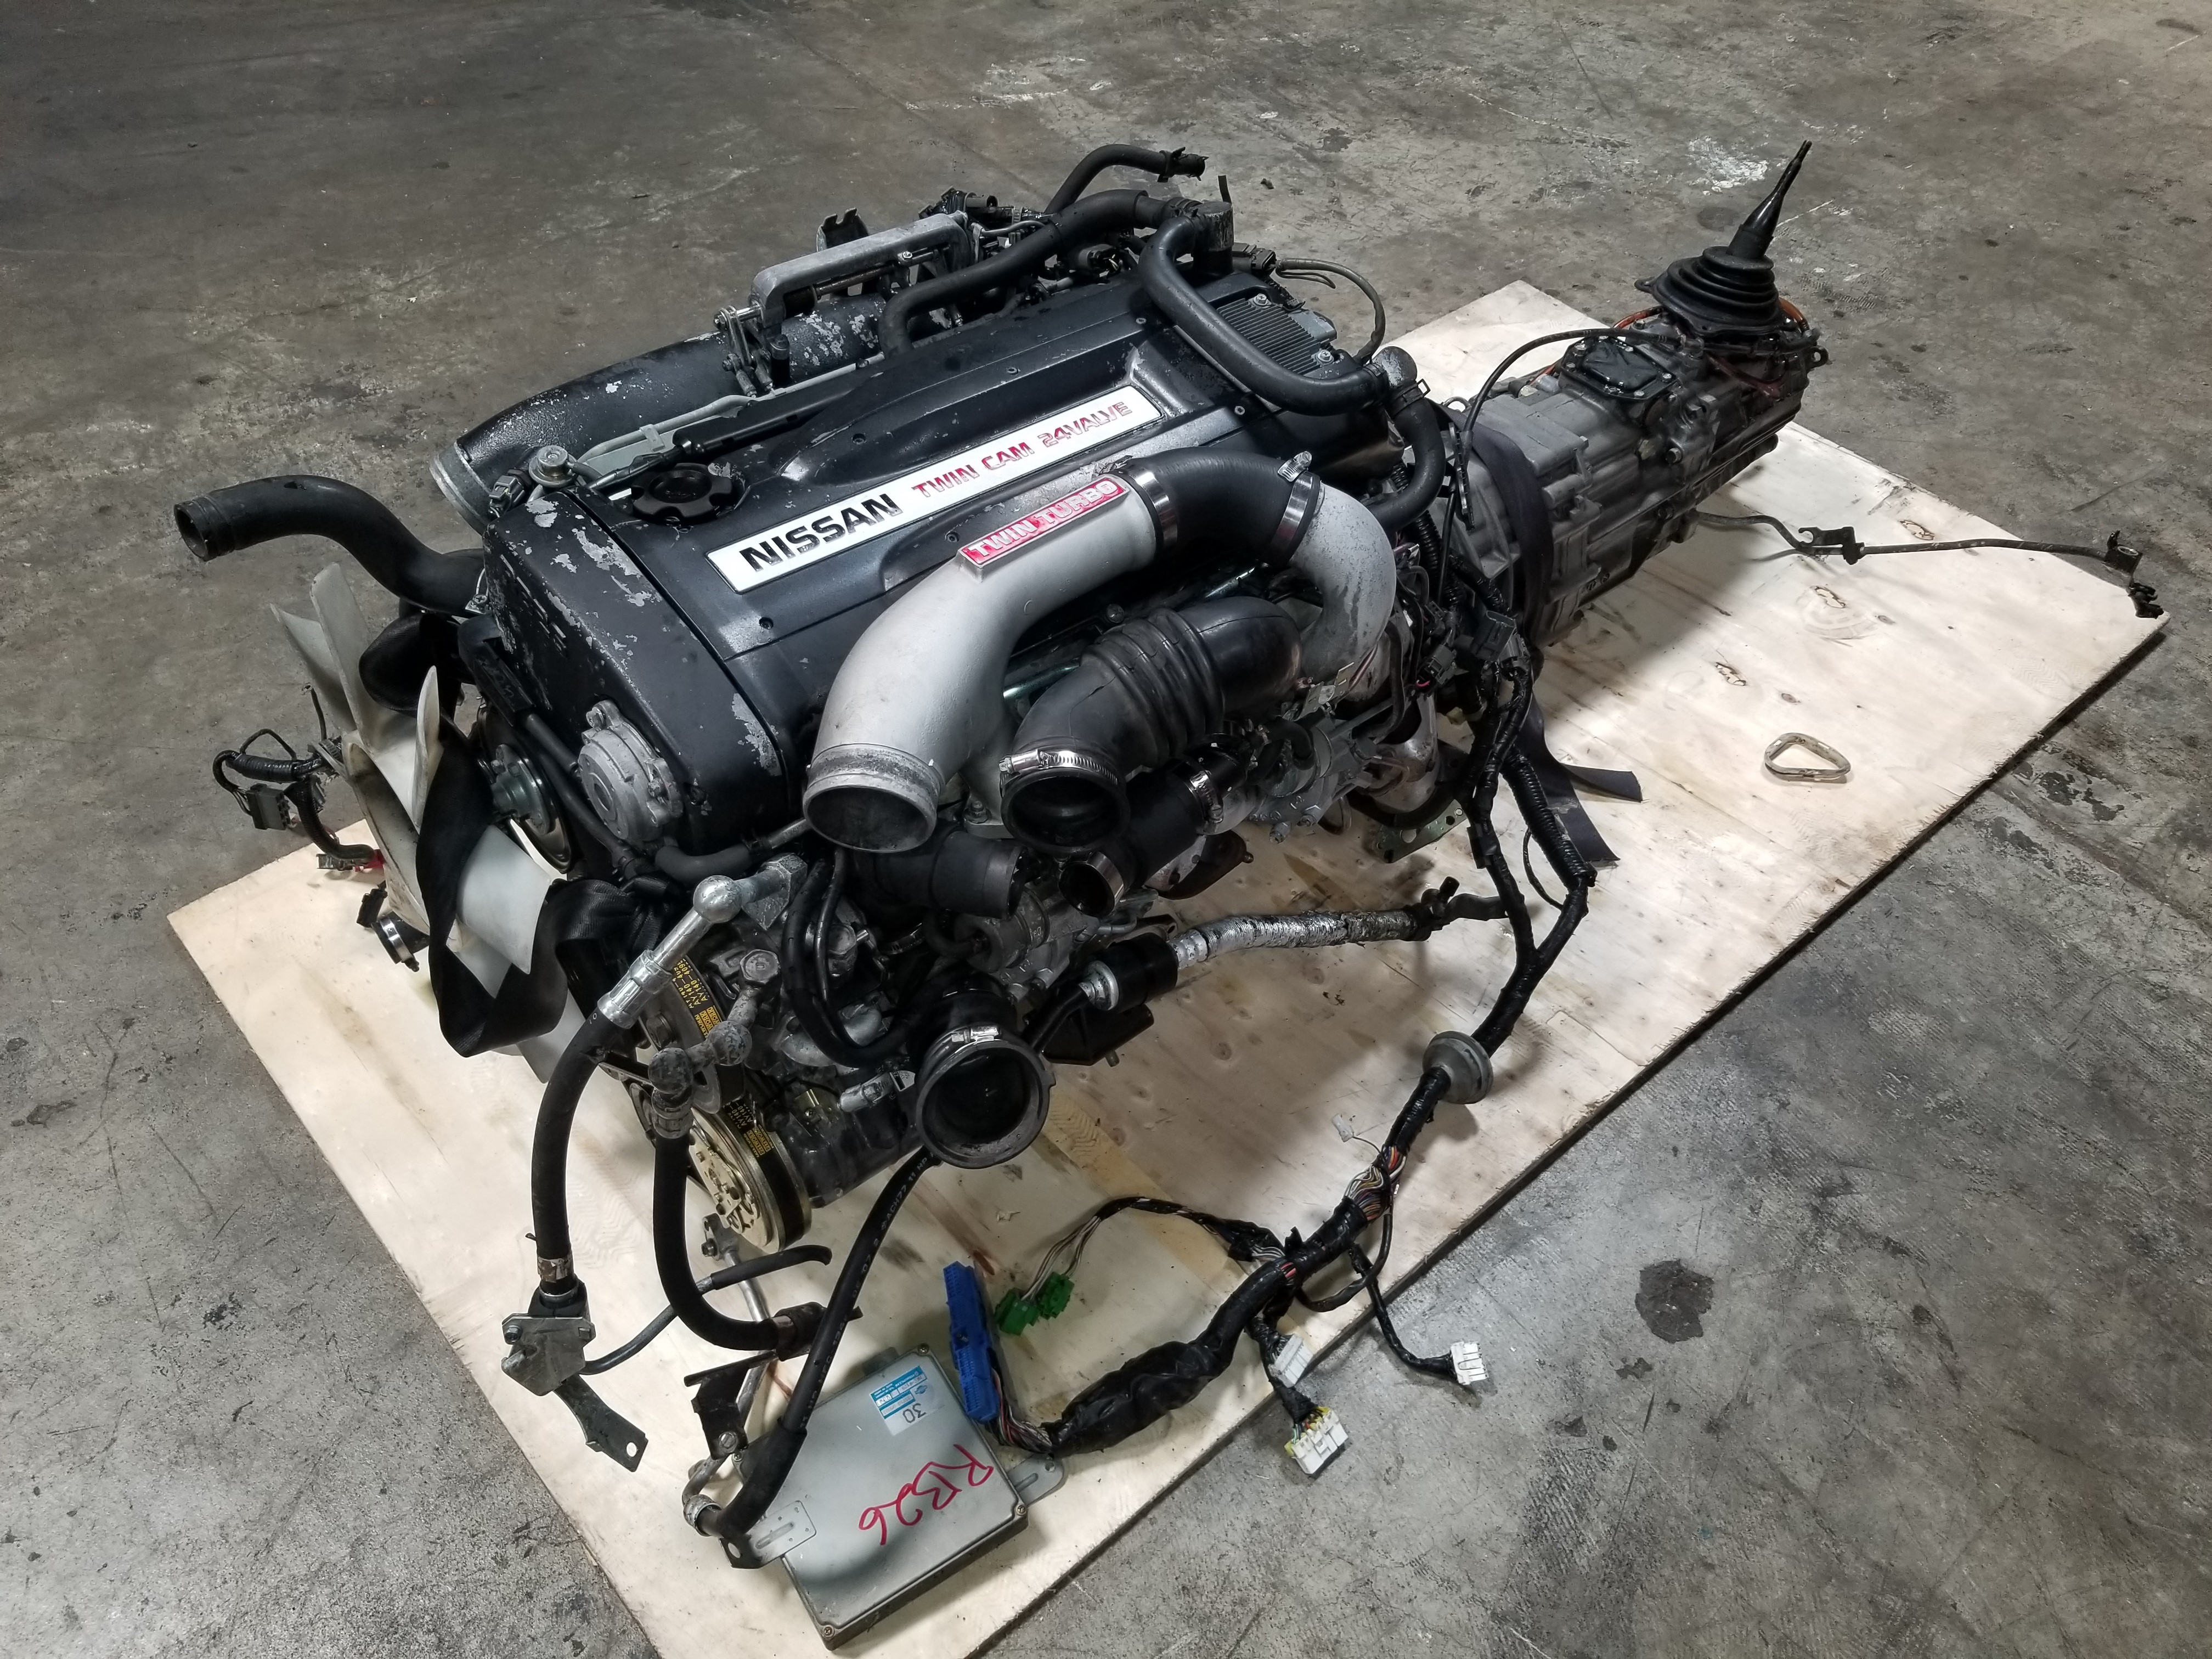 RB26DETT Nissan Skyline GTR R32 2 6L Twin Turbo Engine with 5 Speed AWD  Manual Transmission